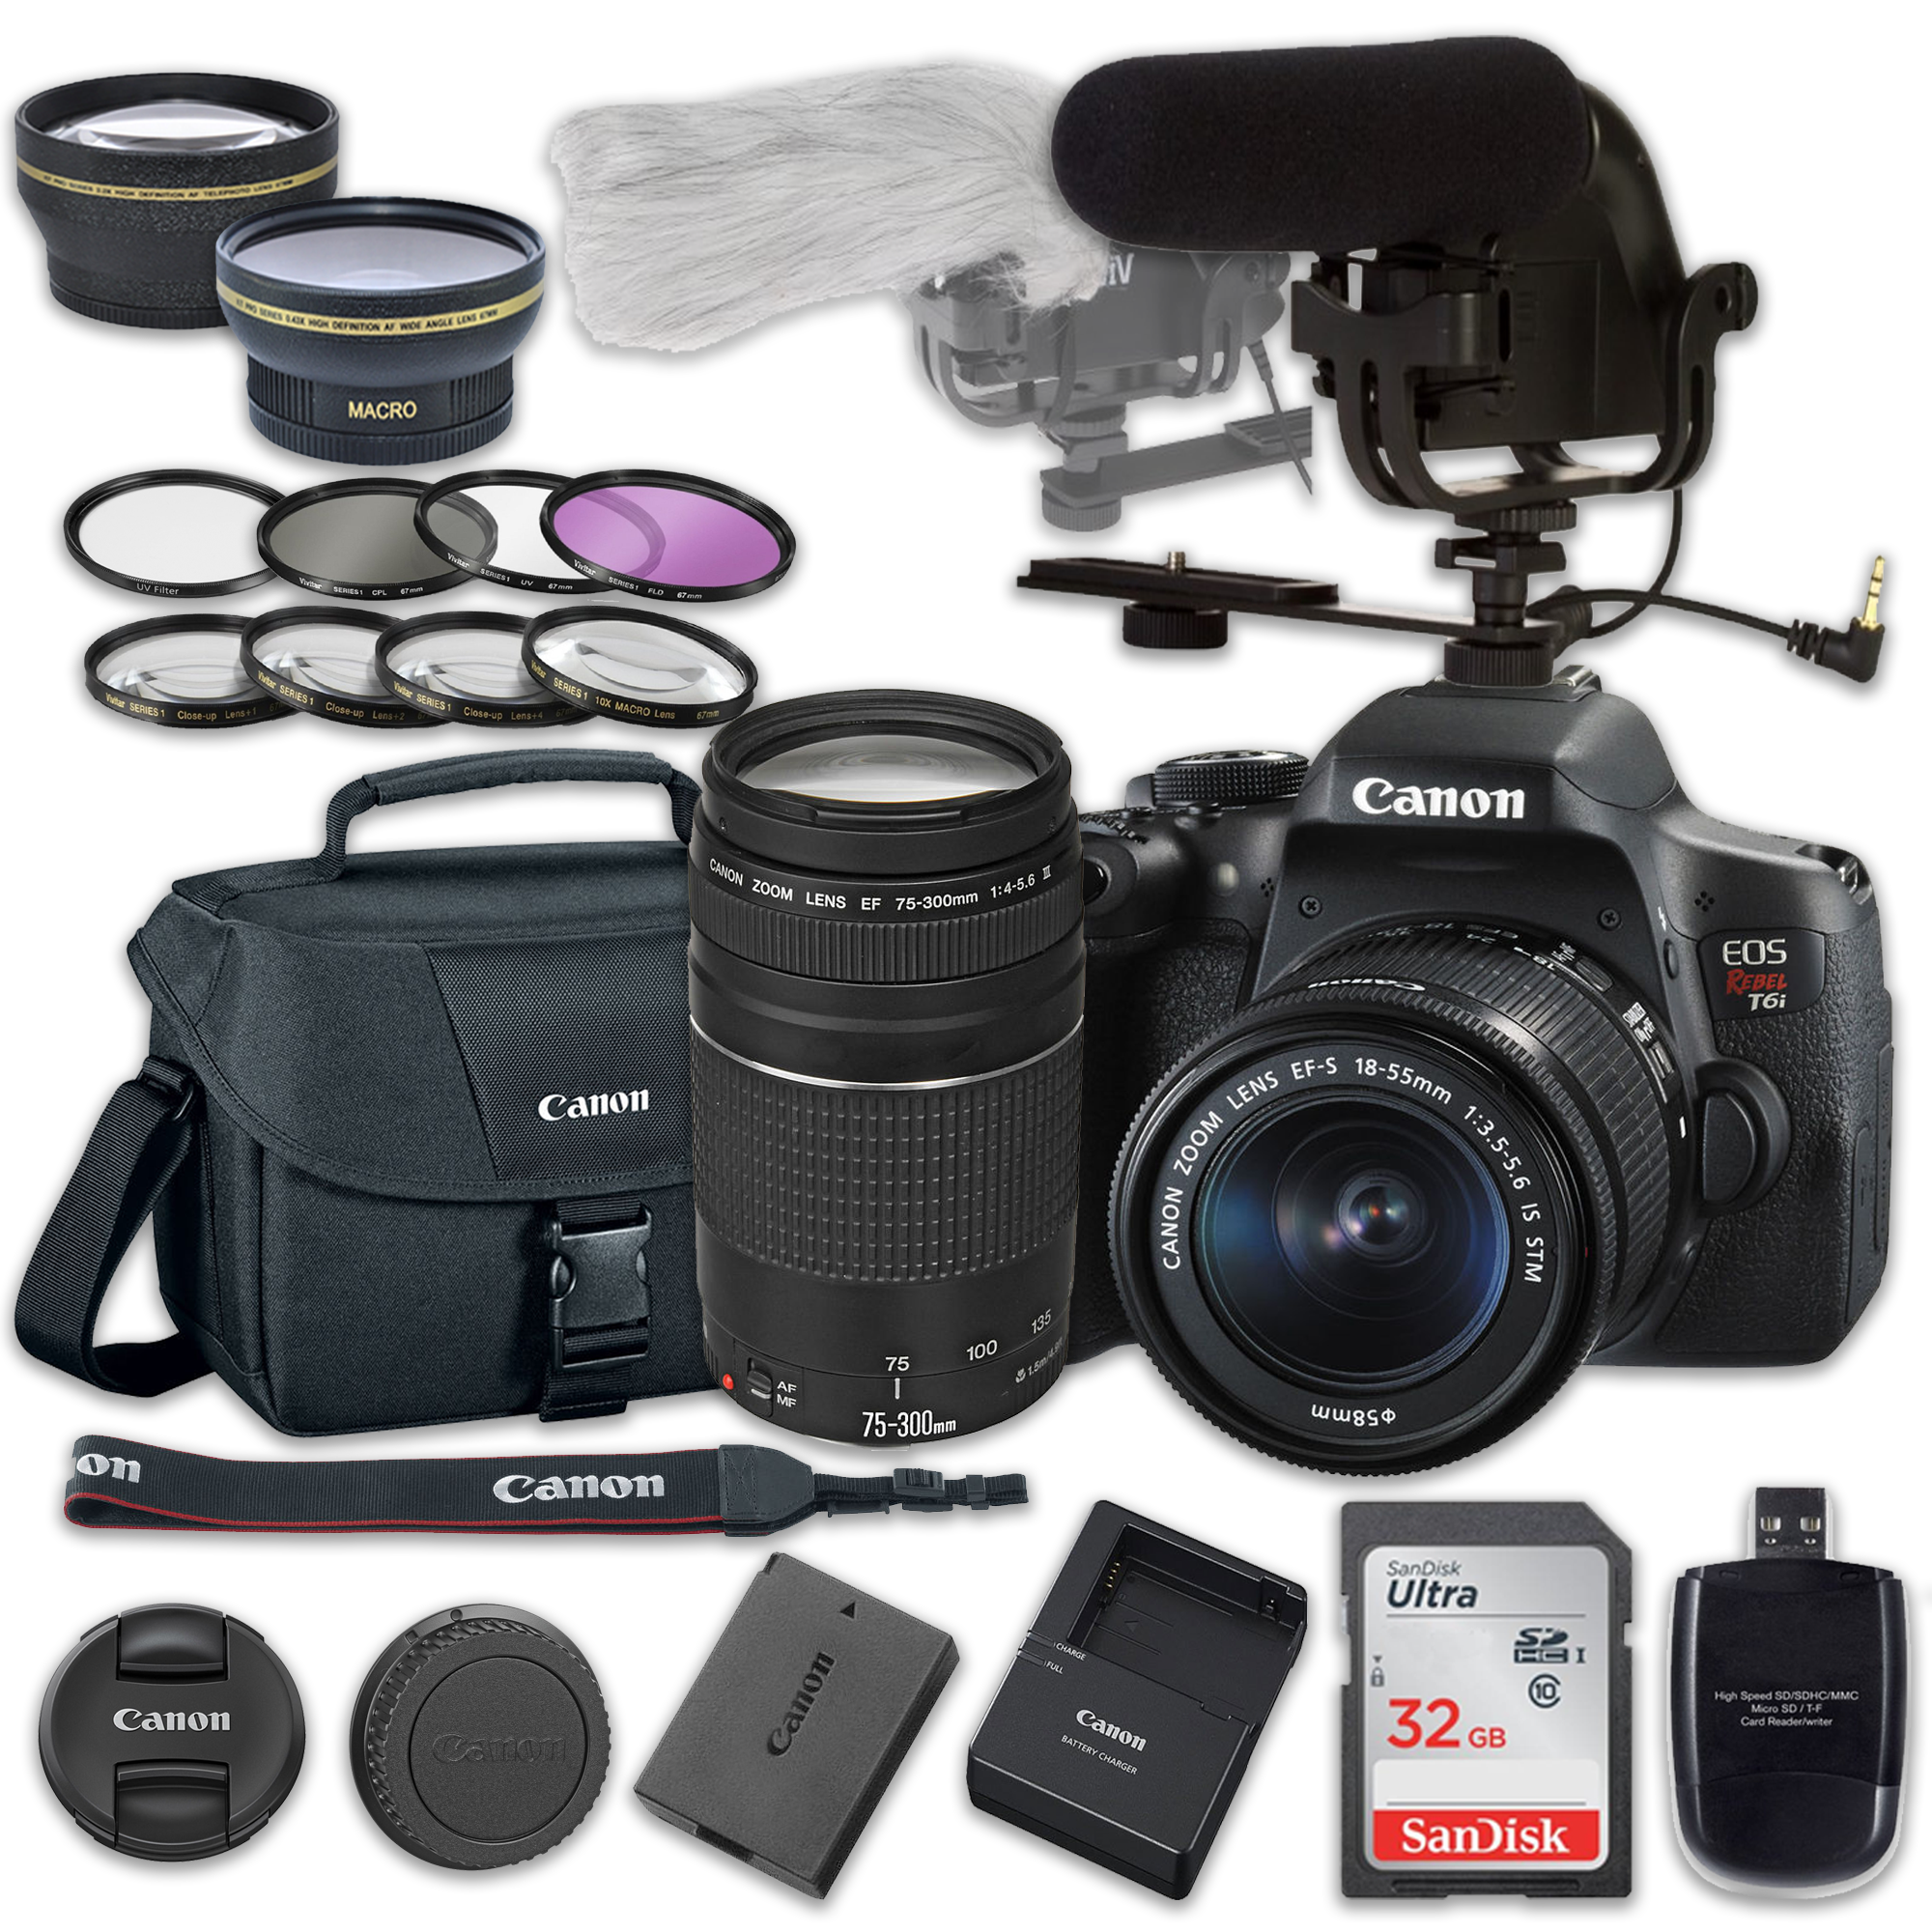 canon eos rebel t6i dslr camera bundle with canon ef s 18